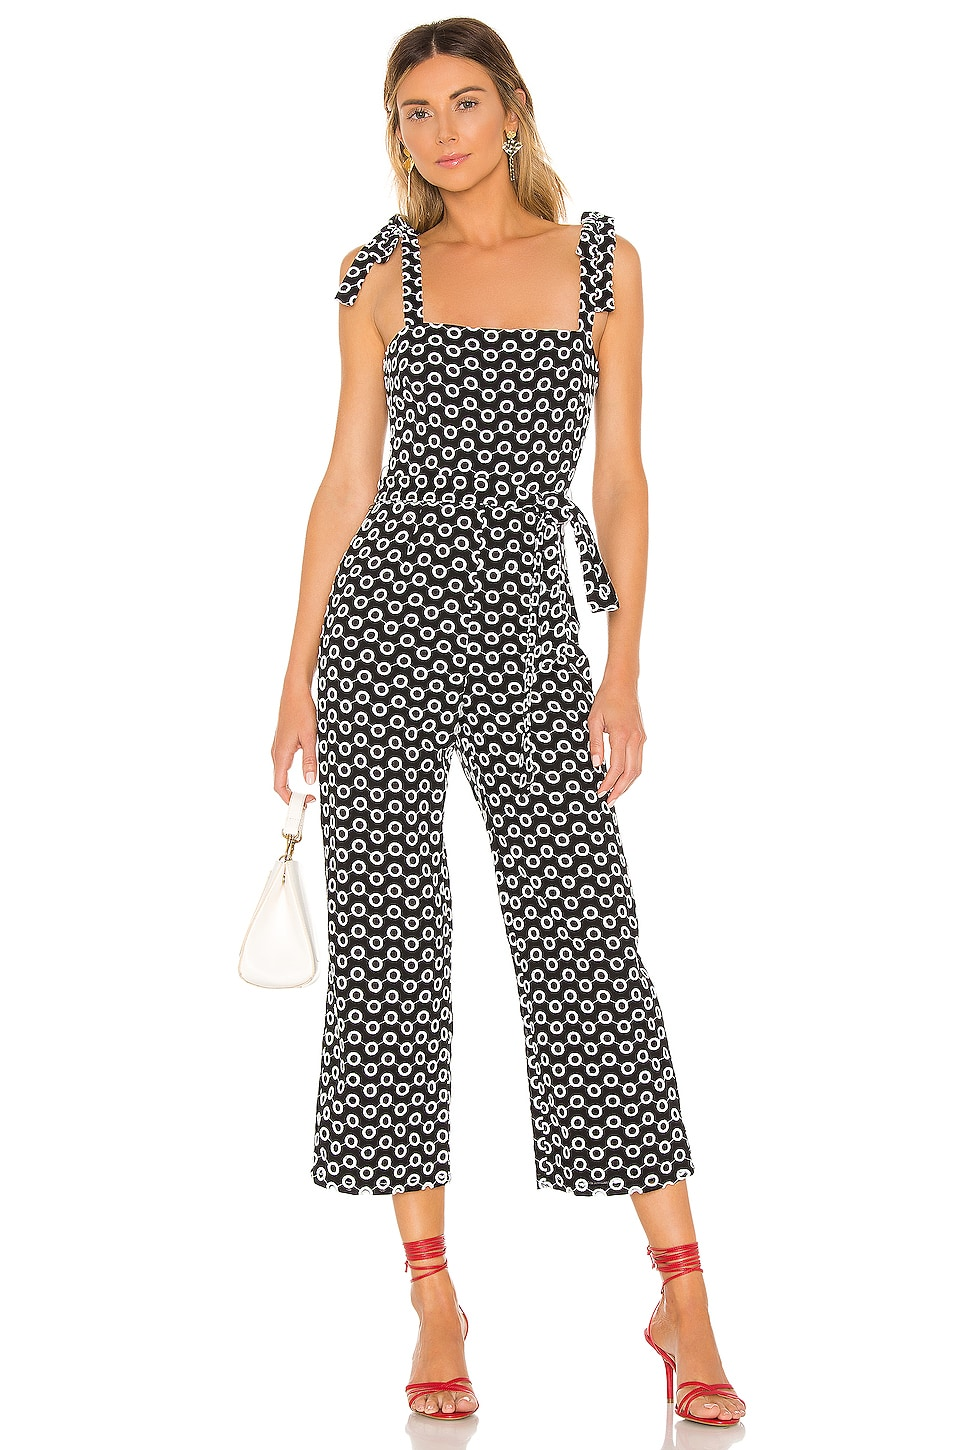 Lovers + Friends Willa Jumpsuit in Black & White